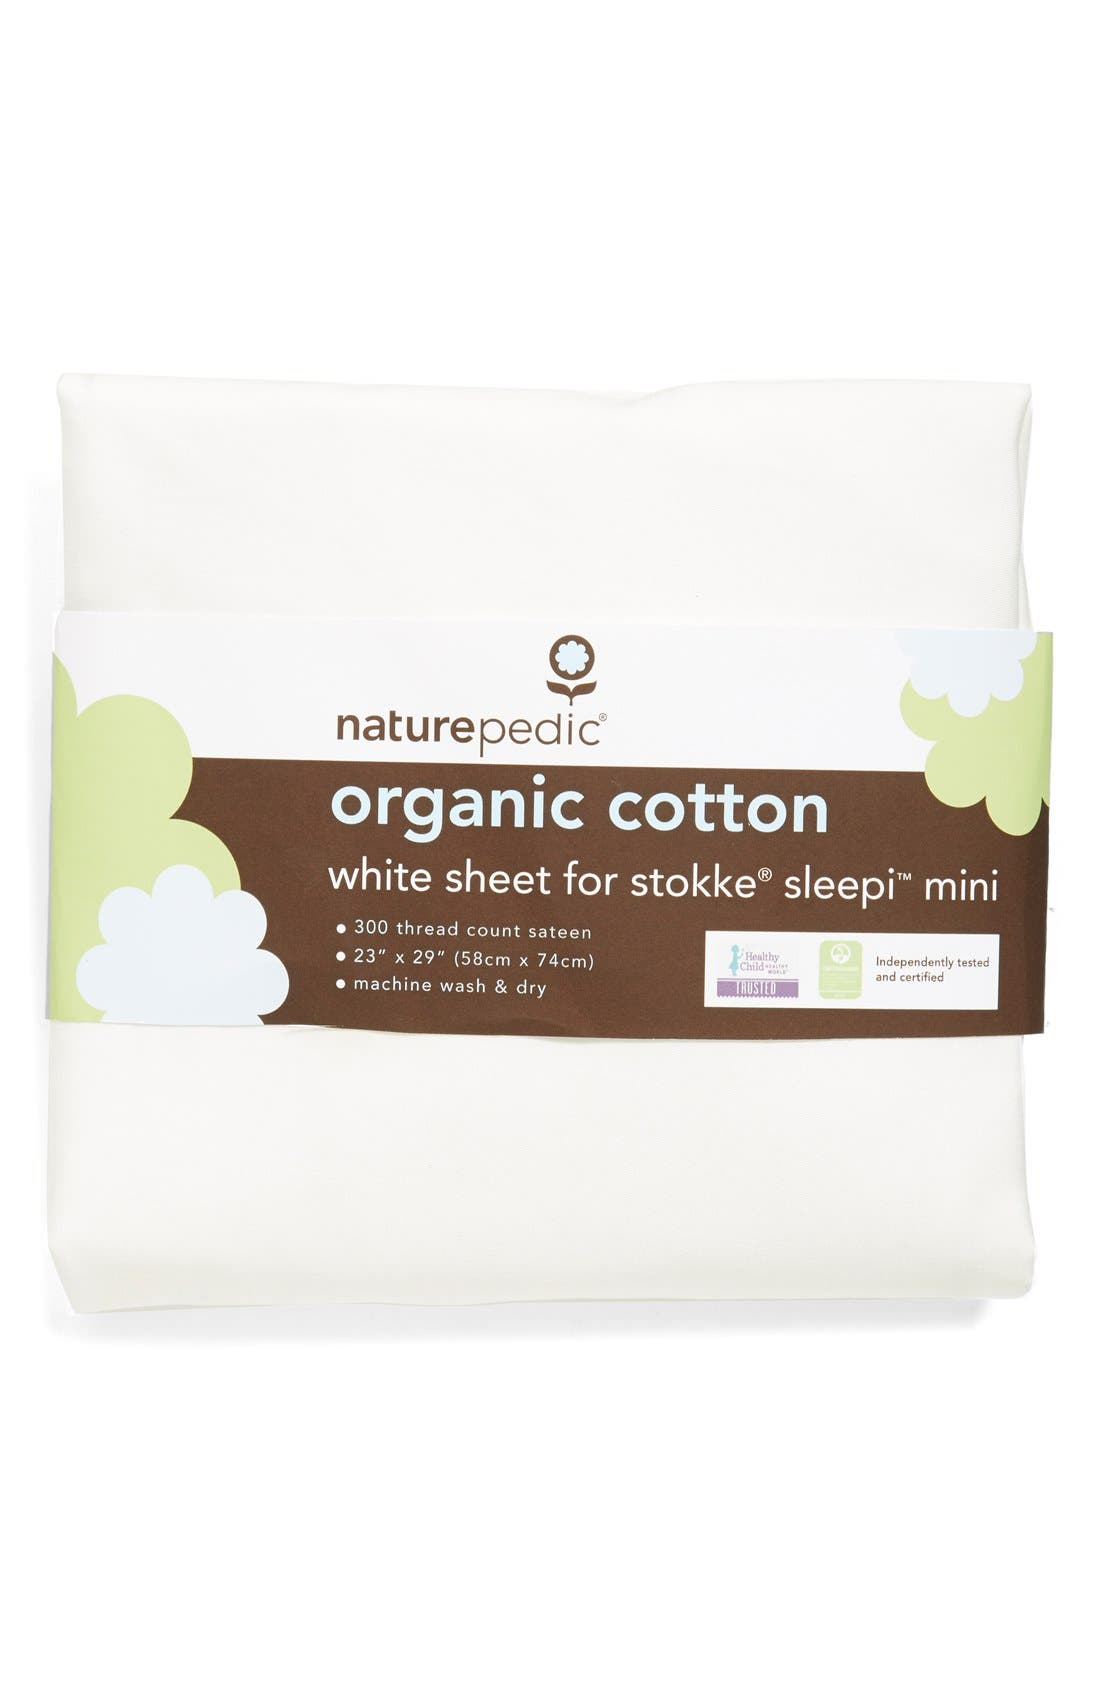 Main Image - Naturepedic 300 Thread Count Organic Cotton Oval Crib Sheet for Stokke Sleepi Mini